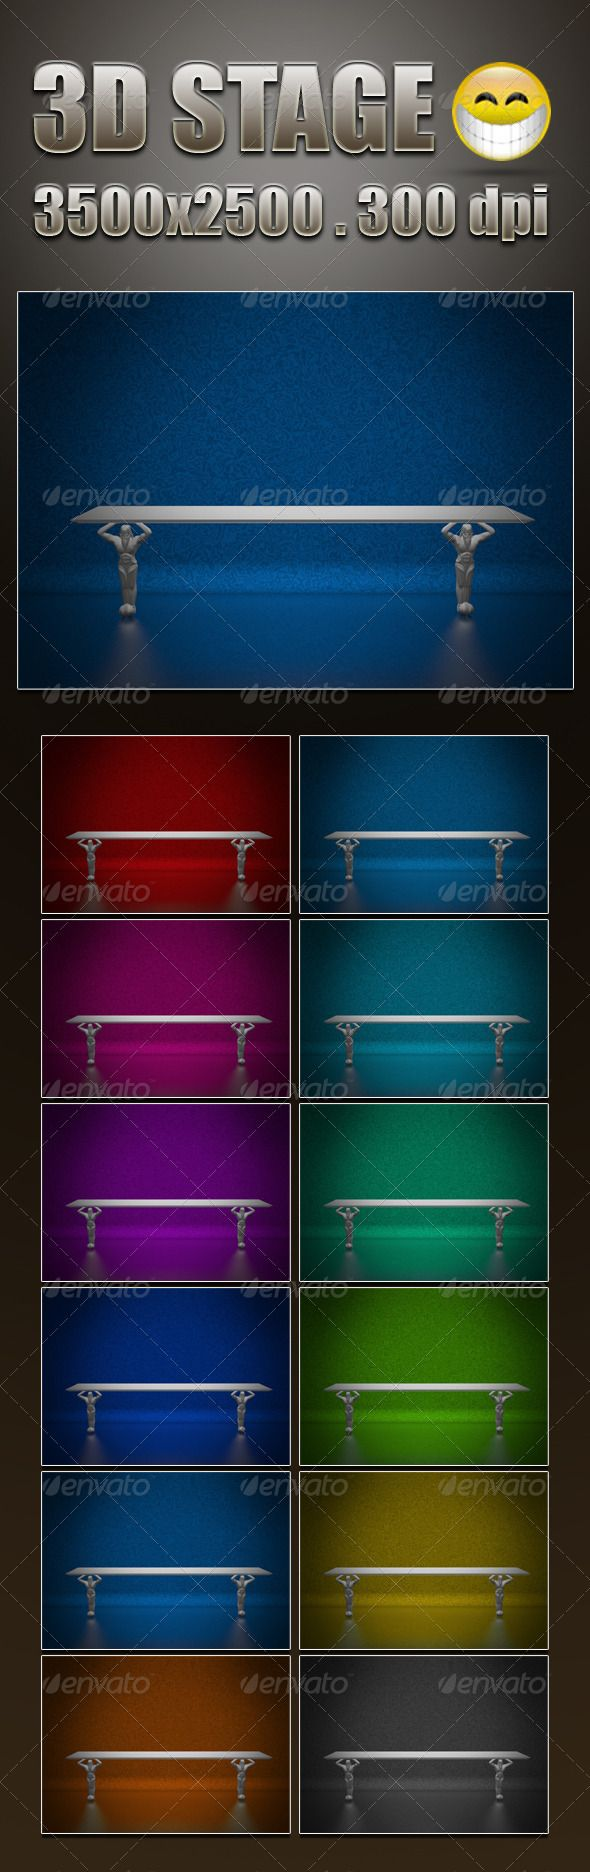 3D Stage   #GraphicRiver         3D Stage in RGB mode 3500×2500px – 300dpi Main archive includes: 12 JPG files, Preview file and thumb   Enjoy!!     Created: 28August12 GraphicsFilesIncluded: JPGImage HighResolution: No Layered: No MinimumAdobeCSVersion: CS PixelDimensions: 3500x2500 PrintDimensions: 11.667x8.333 Tags: 3dstage #advertisement #antique #background #beam #bg #board #box #color #colorful #dark #different #display #gallery #happiness #interior #light #lights #old #pattern…